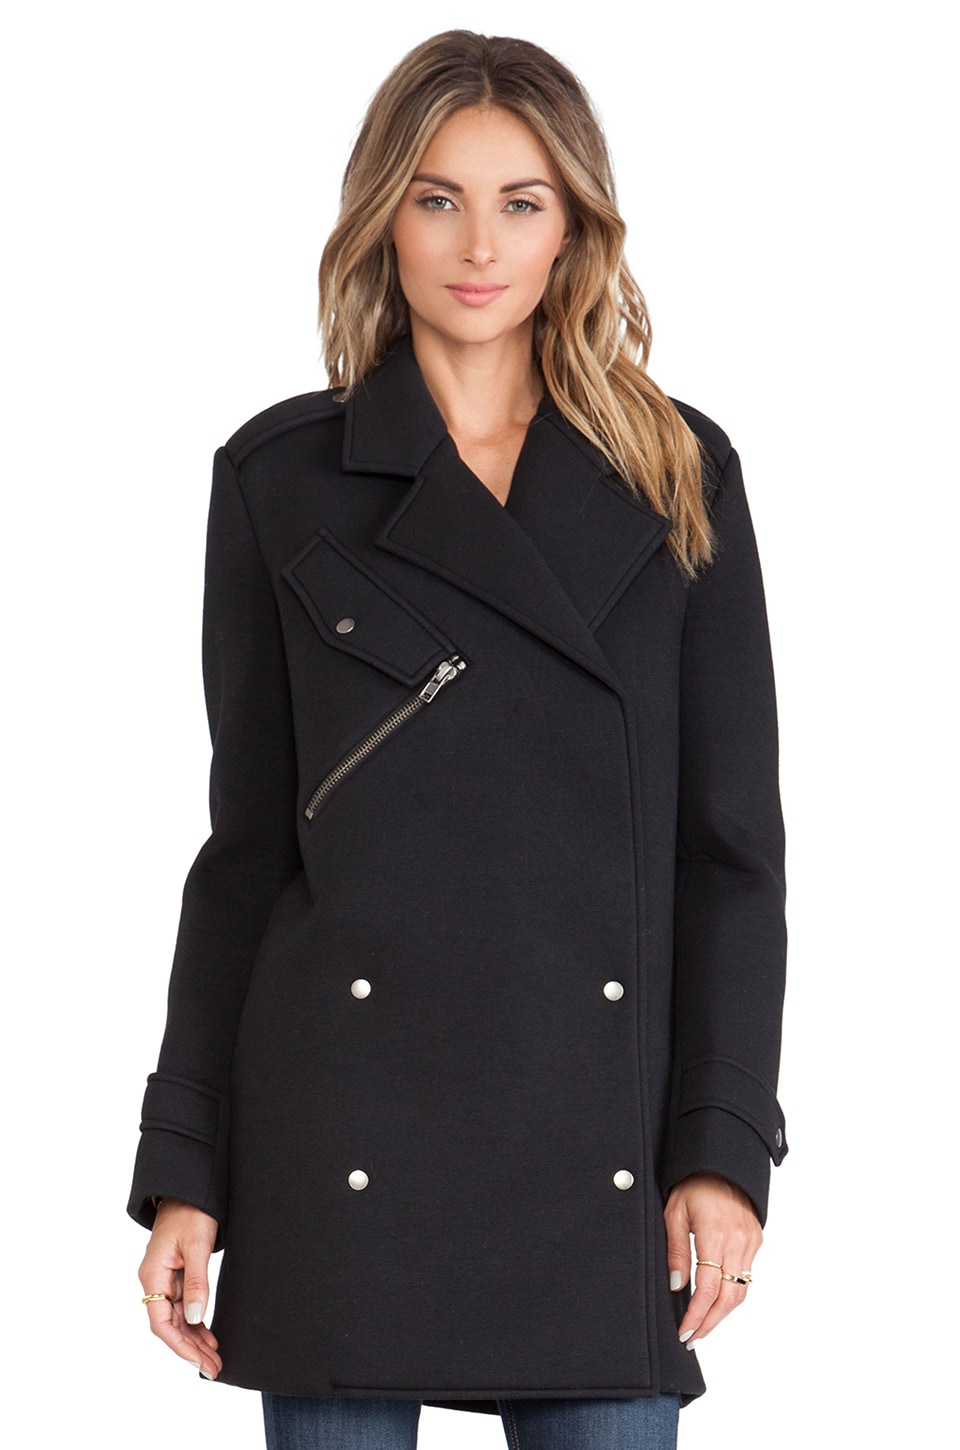 J.O.A. Neoprene Coat in Black